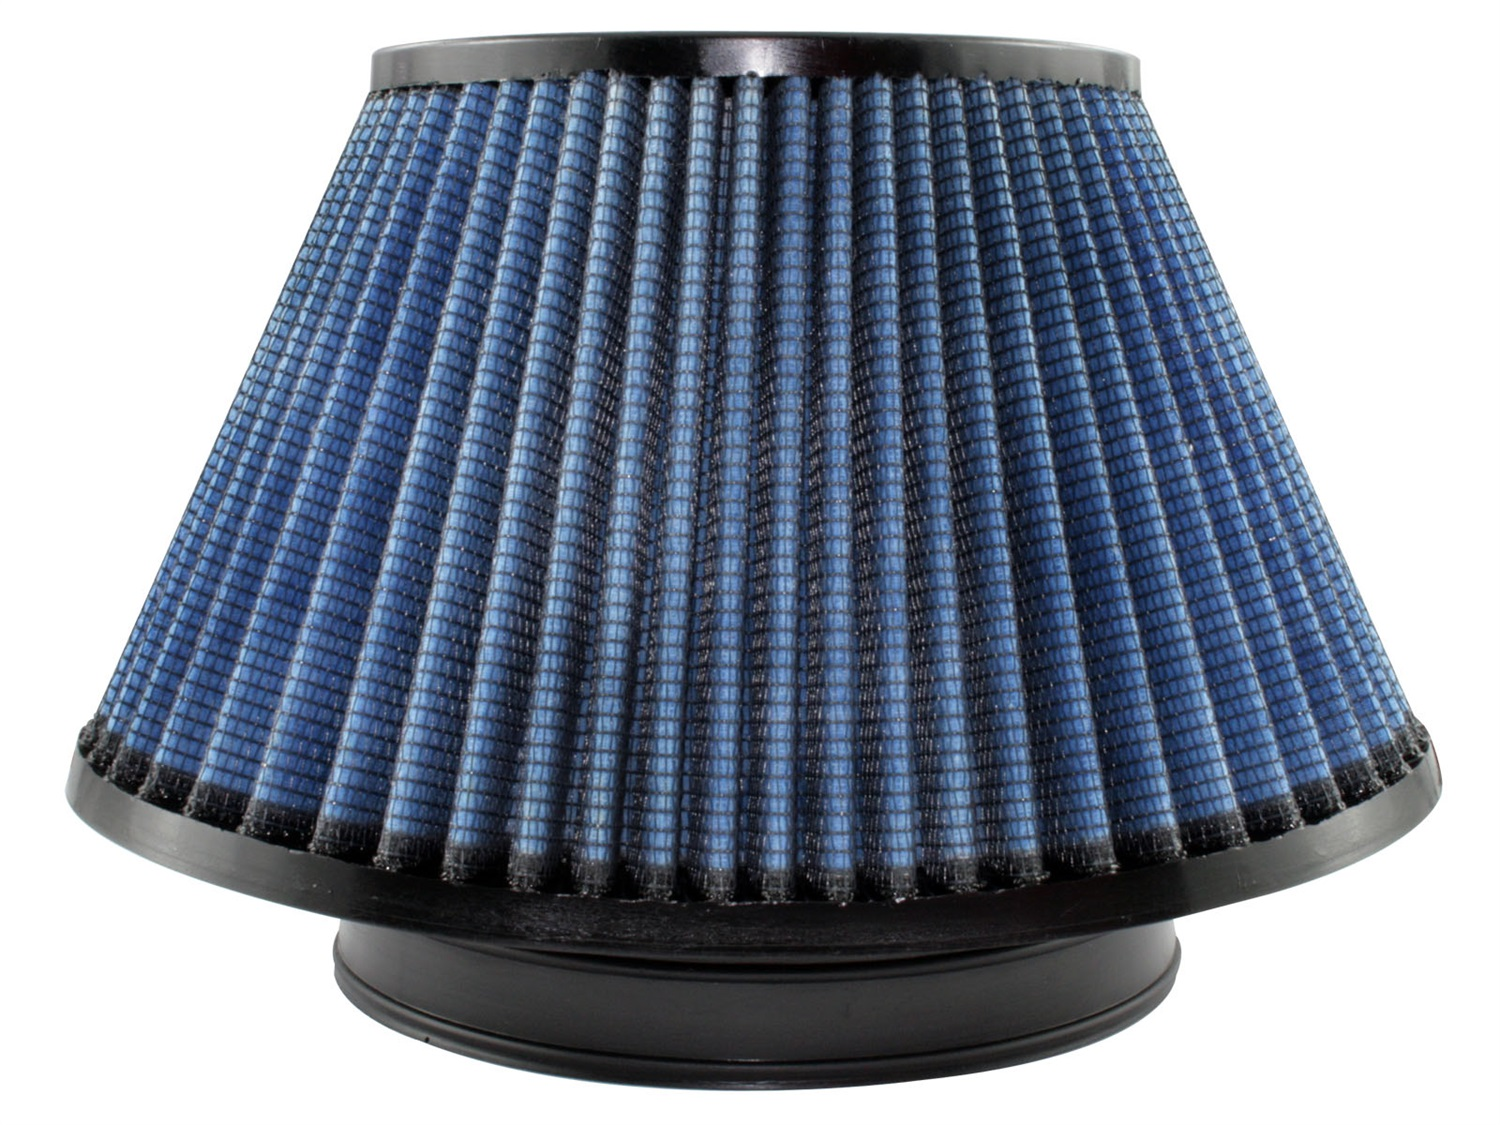 aFe Power 24-91040 MagnumFLOW Intake PRO 5R Air Filter 24-91040